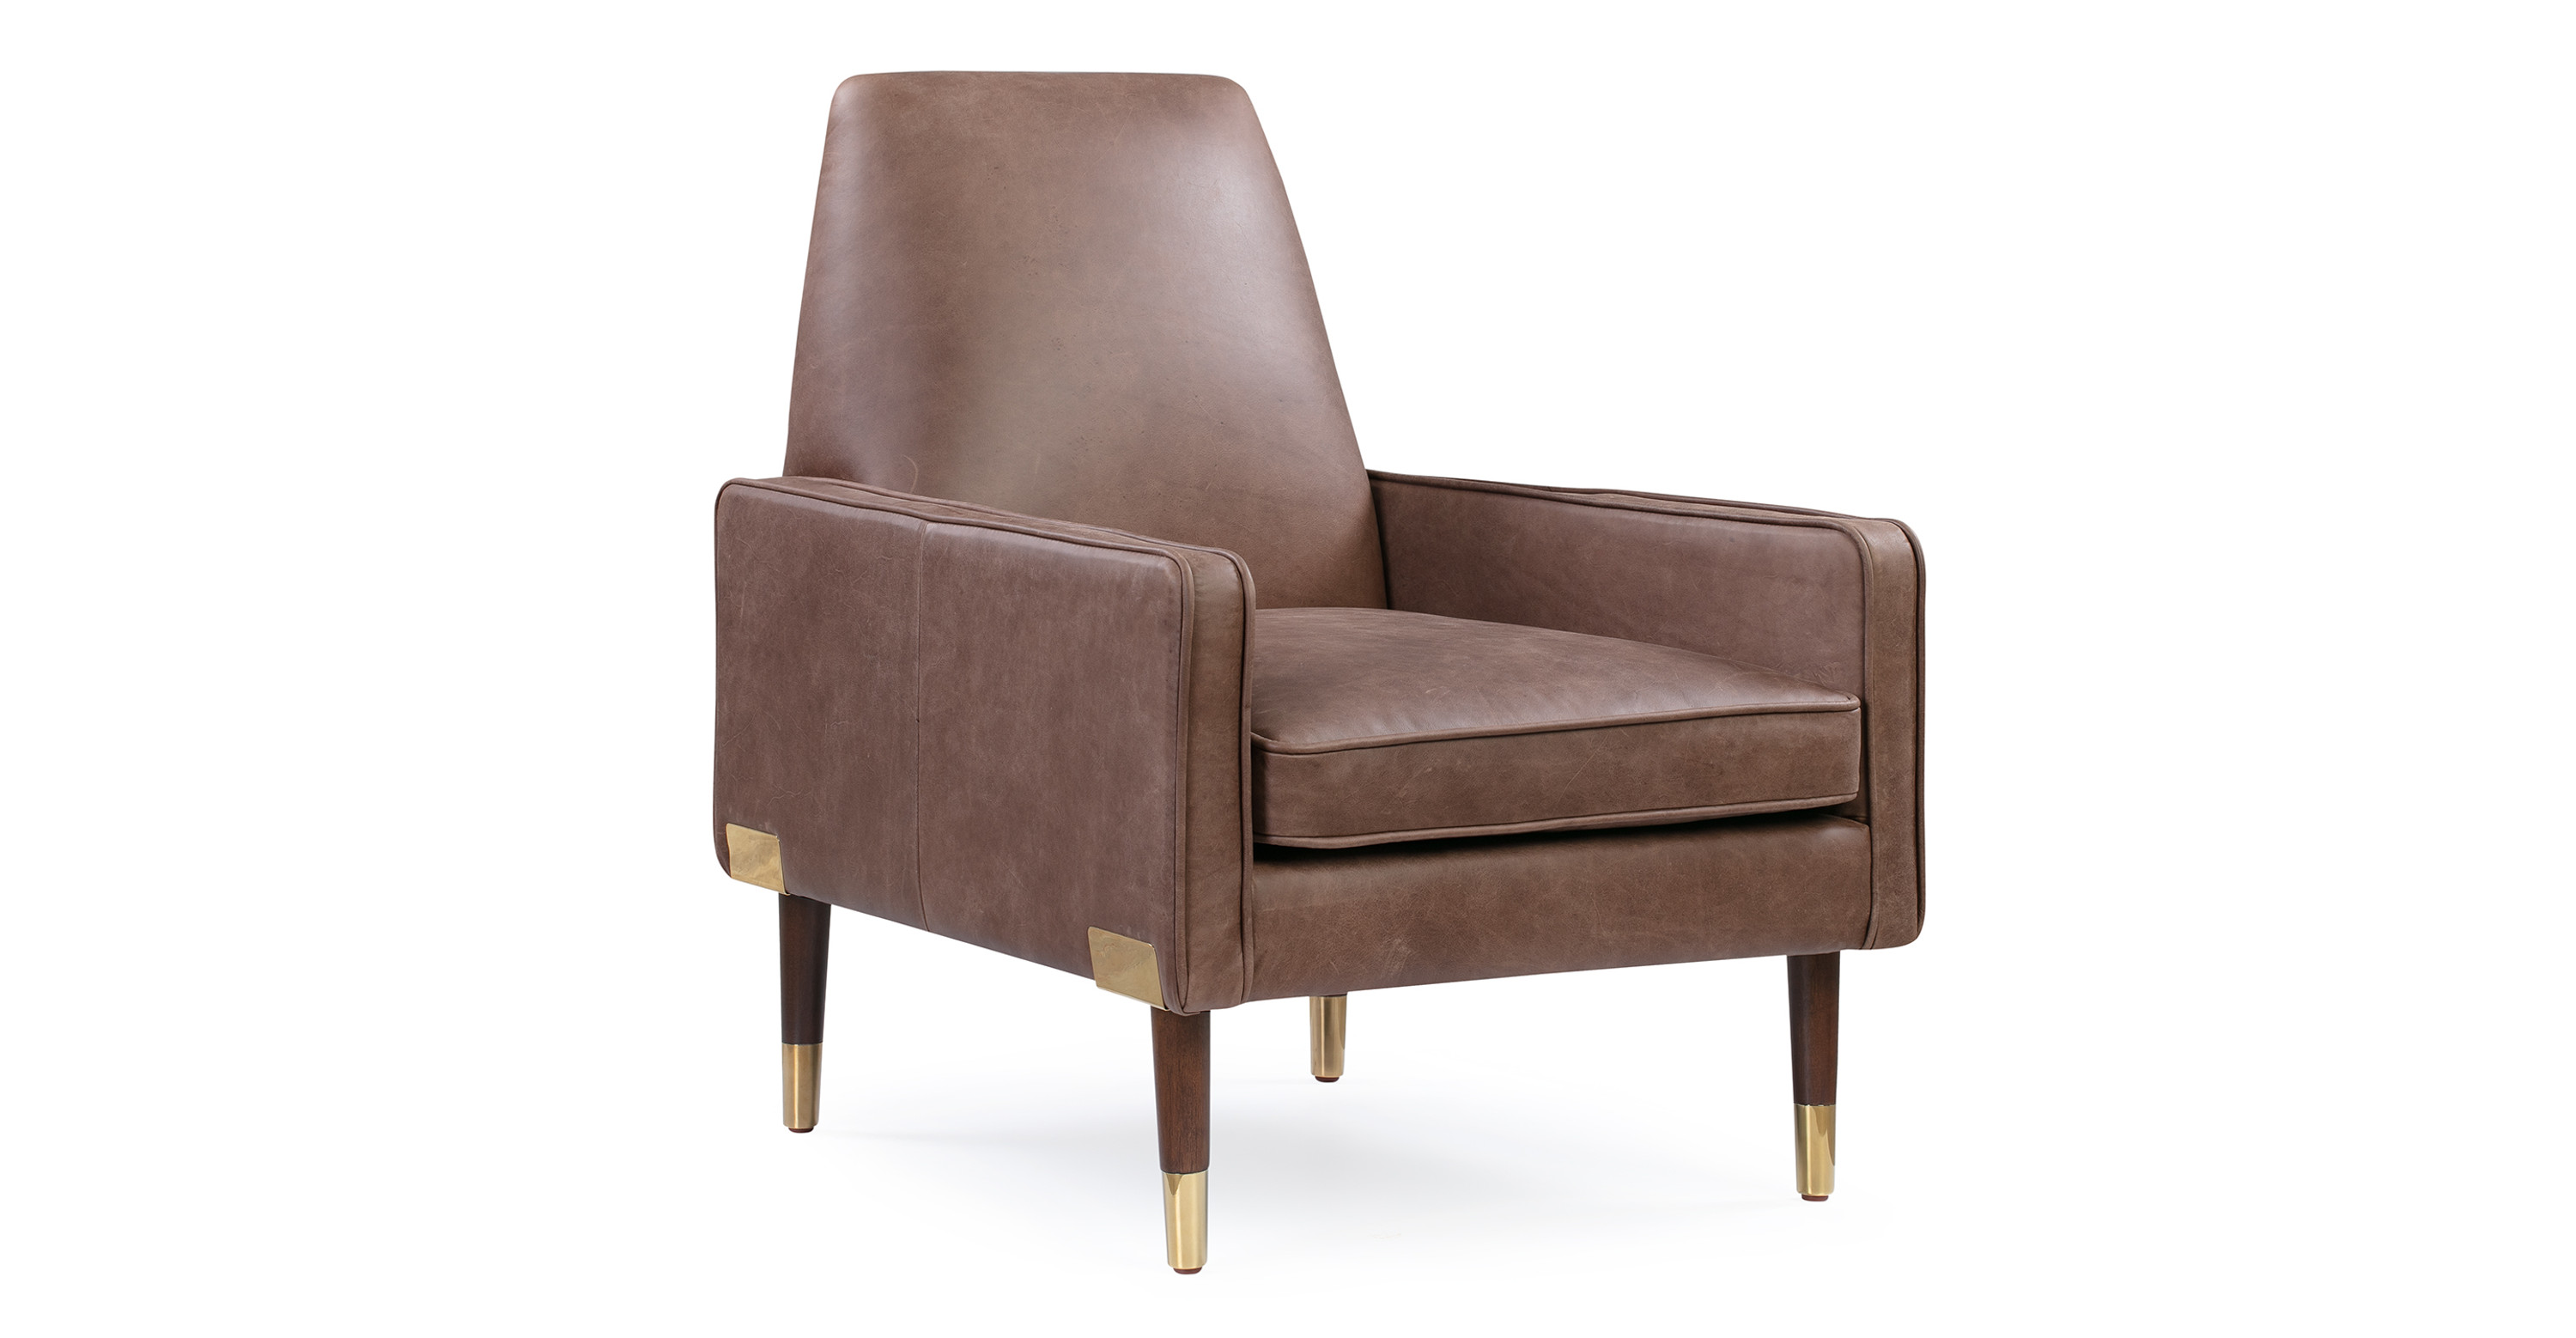 Groovy Draper 27 Leather Chair Mocha Top Grain Full Aniline Caraccident5 Cool Chair Designs And Ideas Caraccident5Info